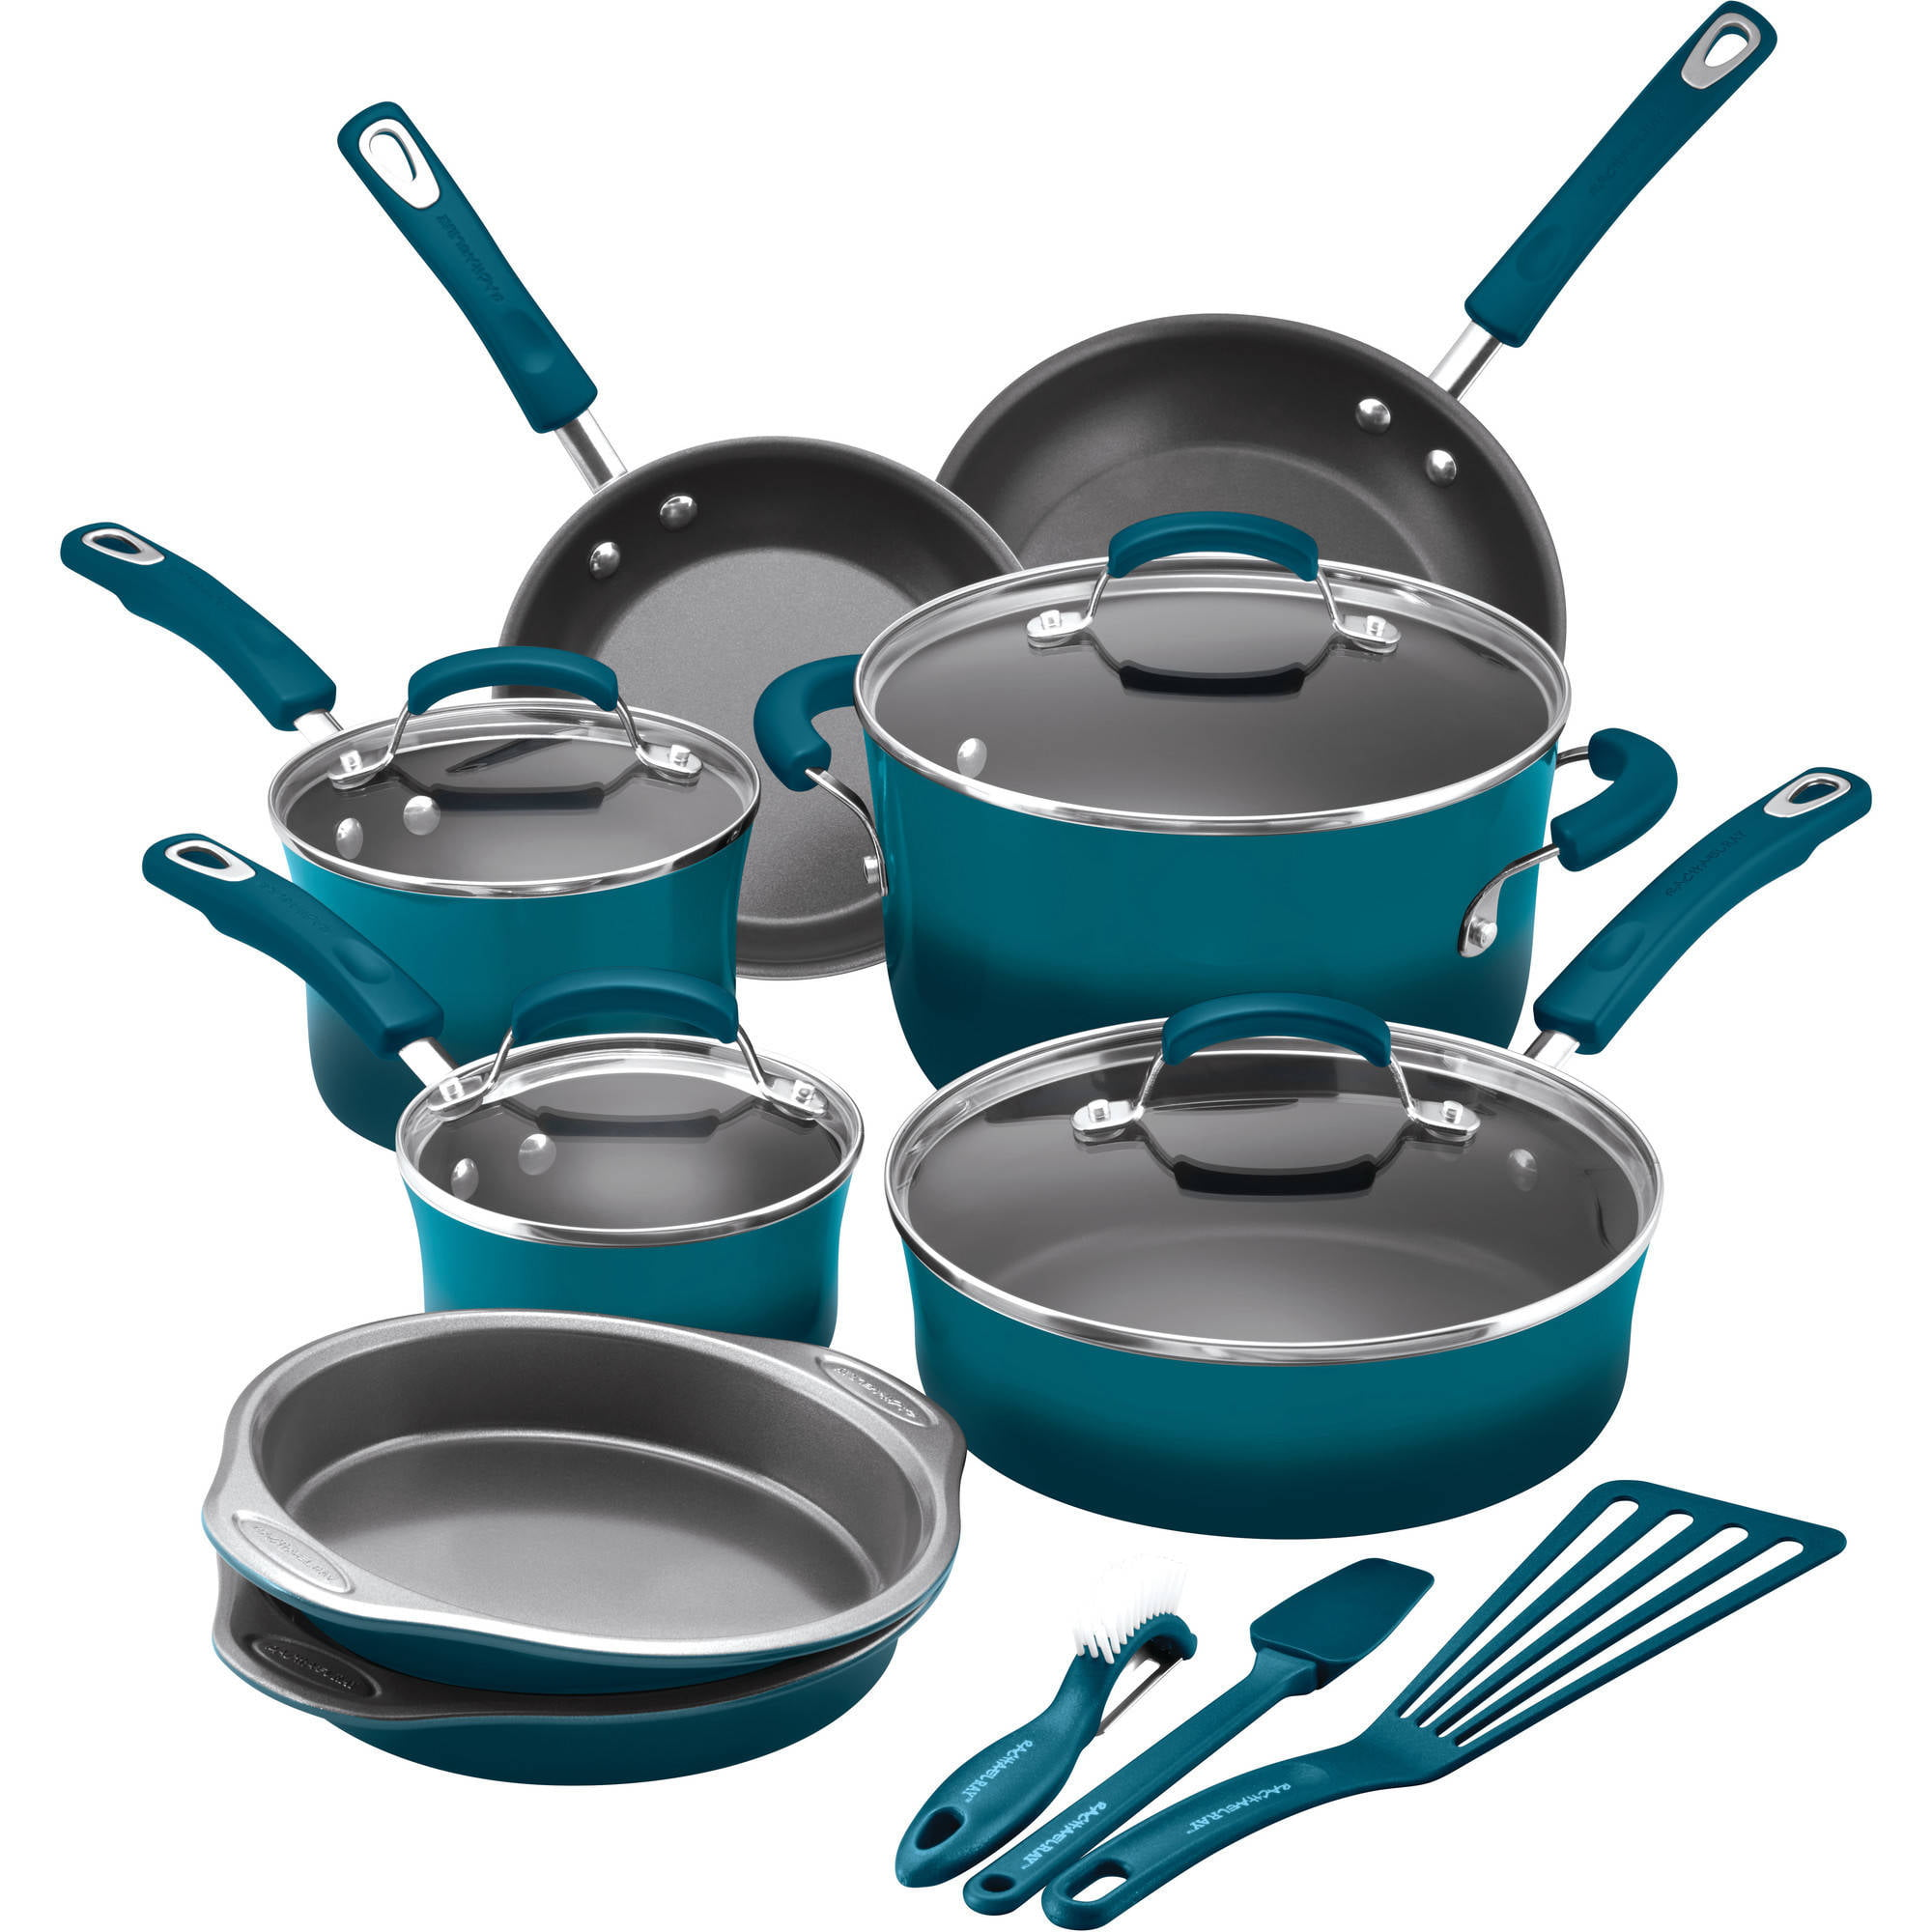 Rachael Ray 15 Piece Hard Enamel Aluminum Nonstick Cookware Set